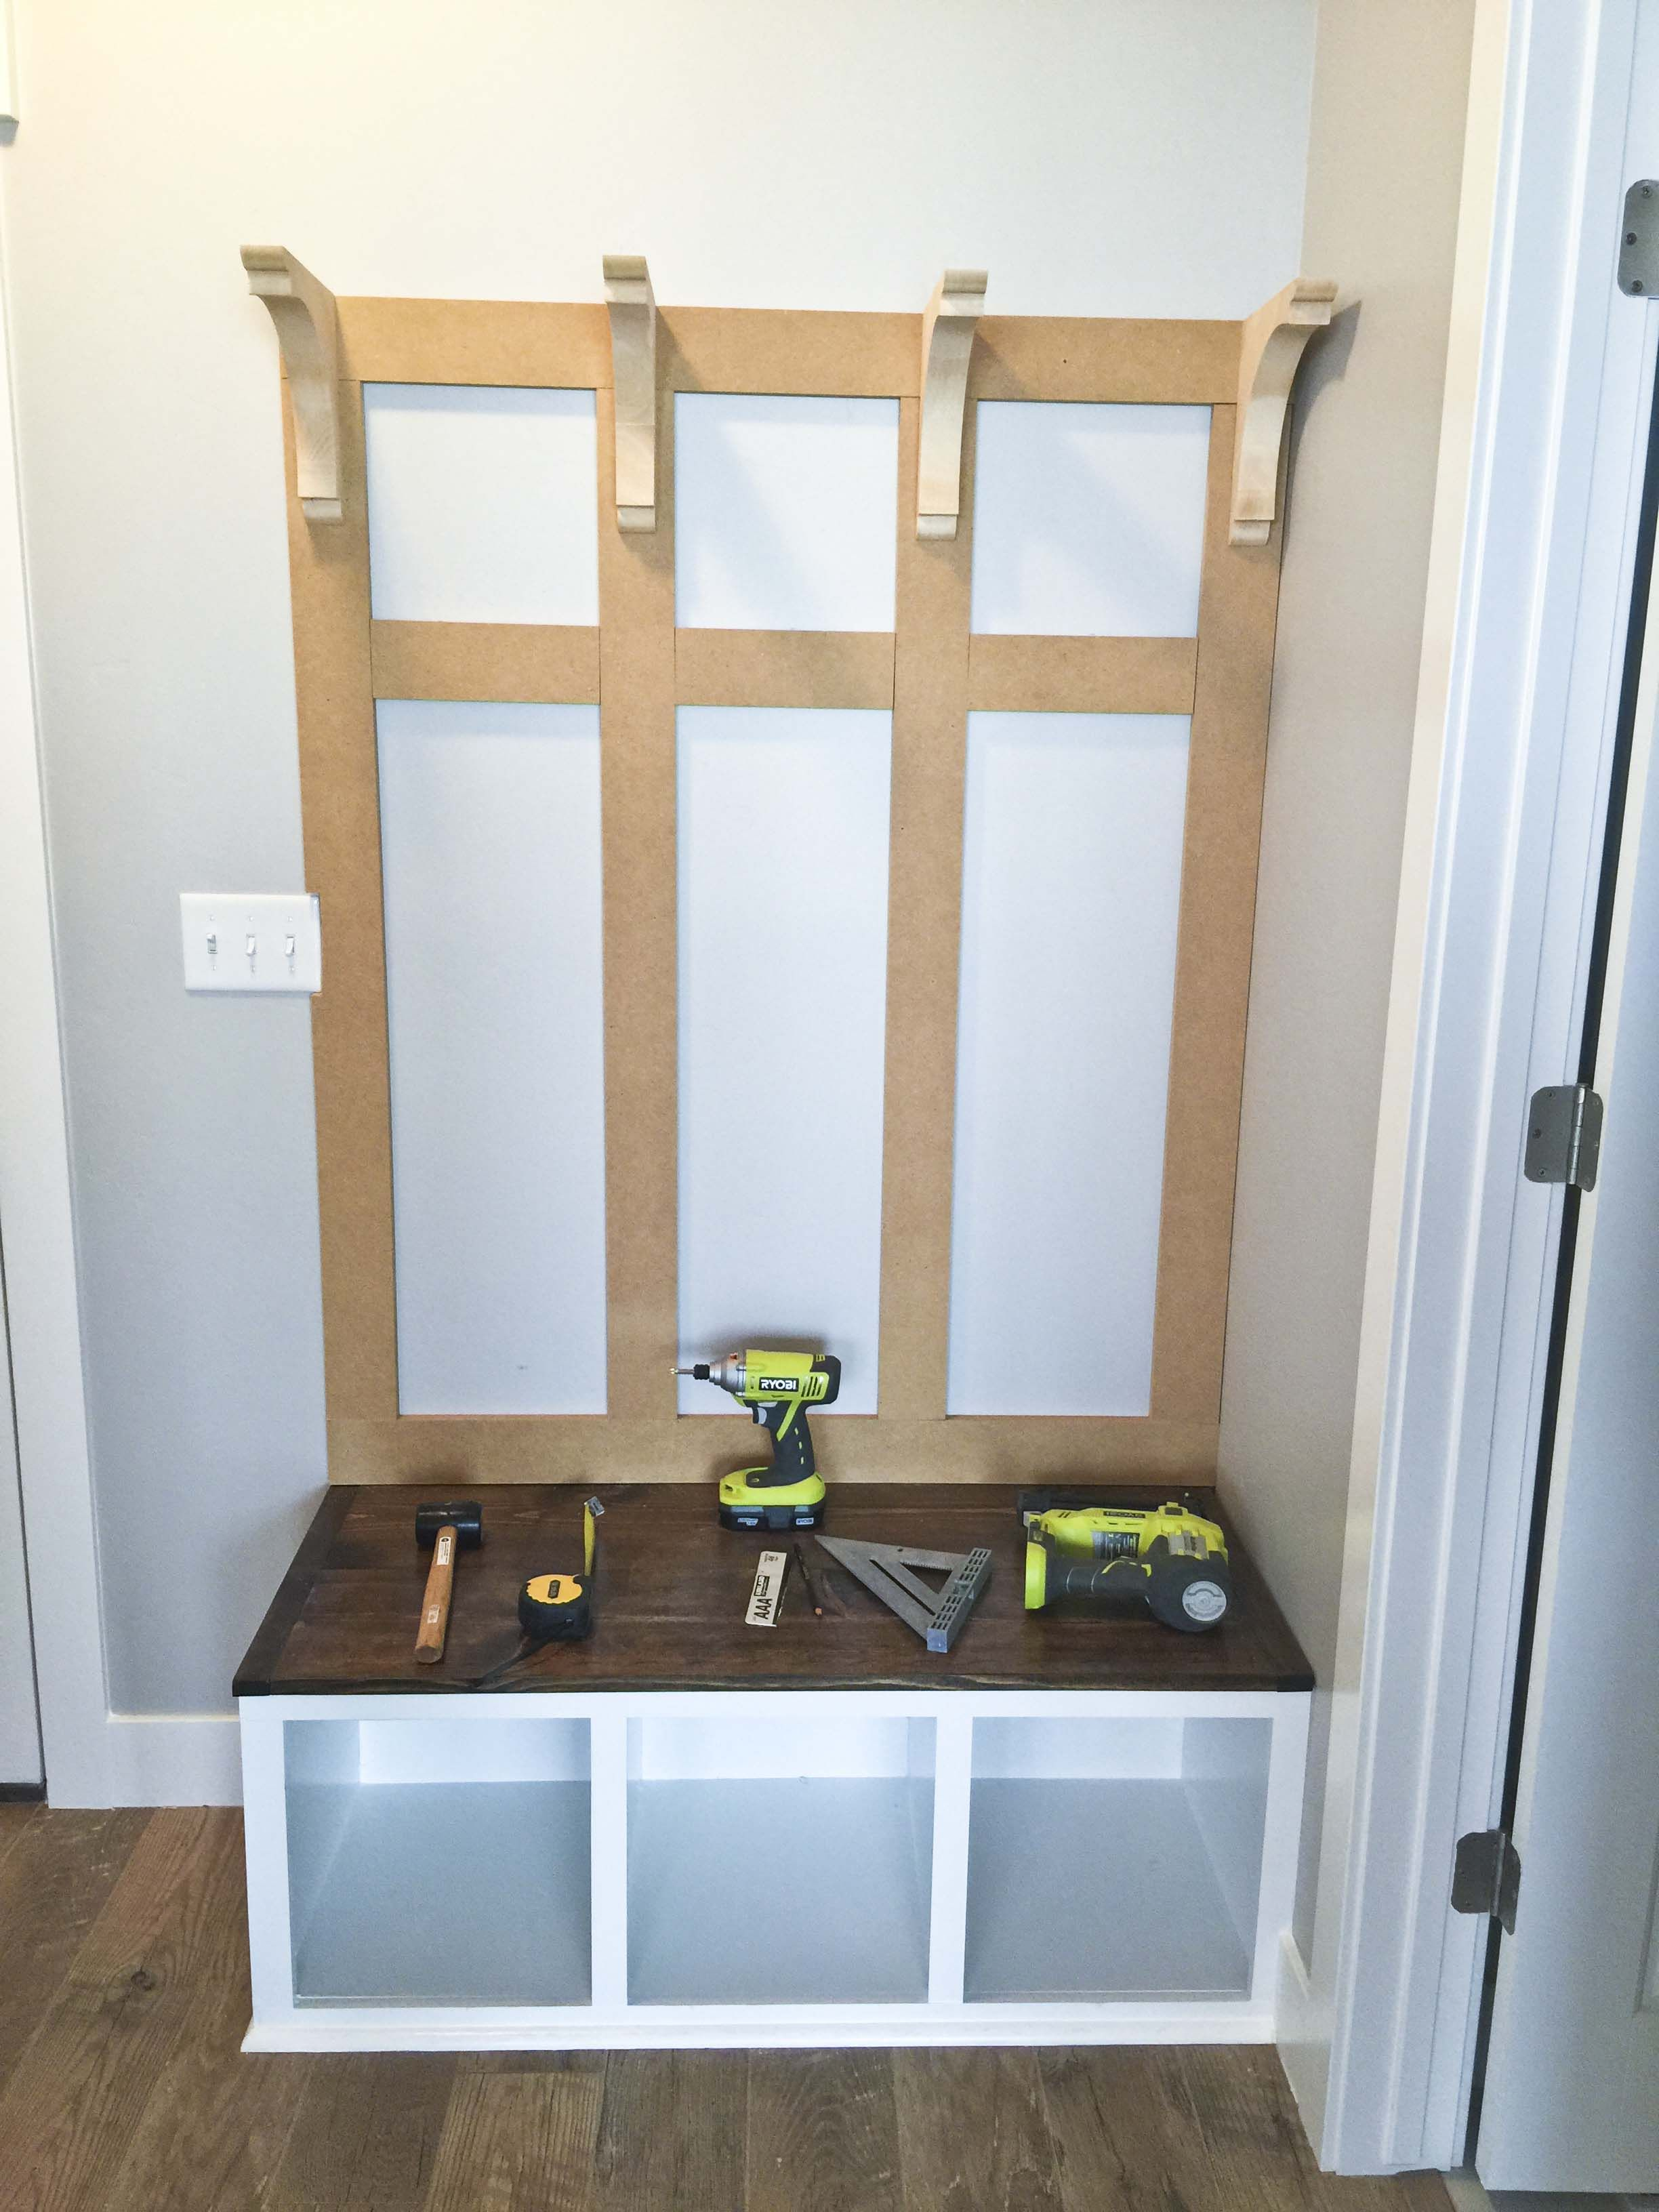 Room Design Free: Mudroom Bench Plans, Bench